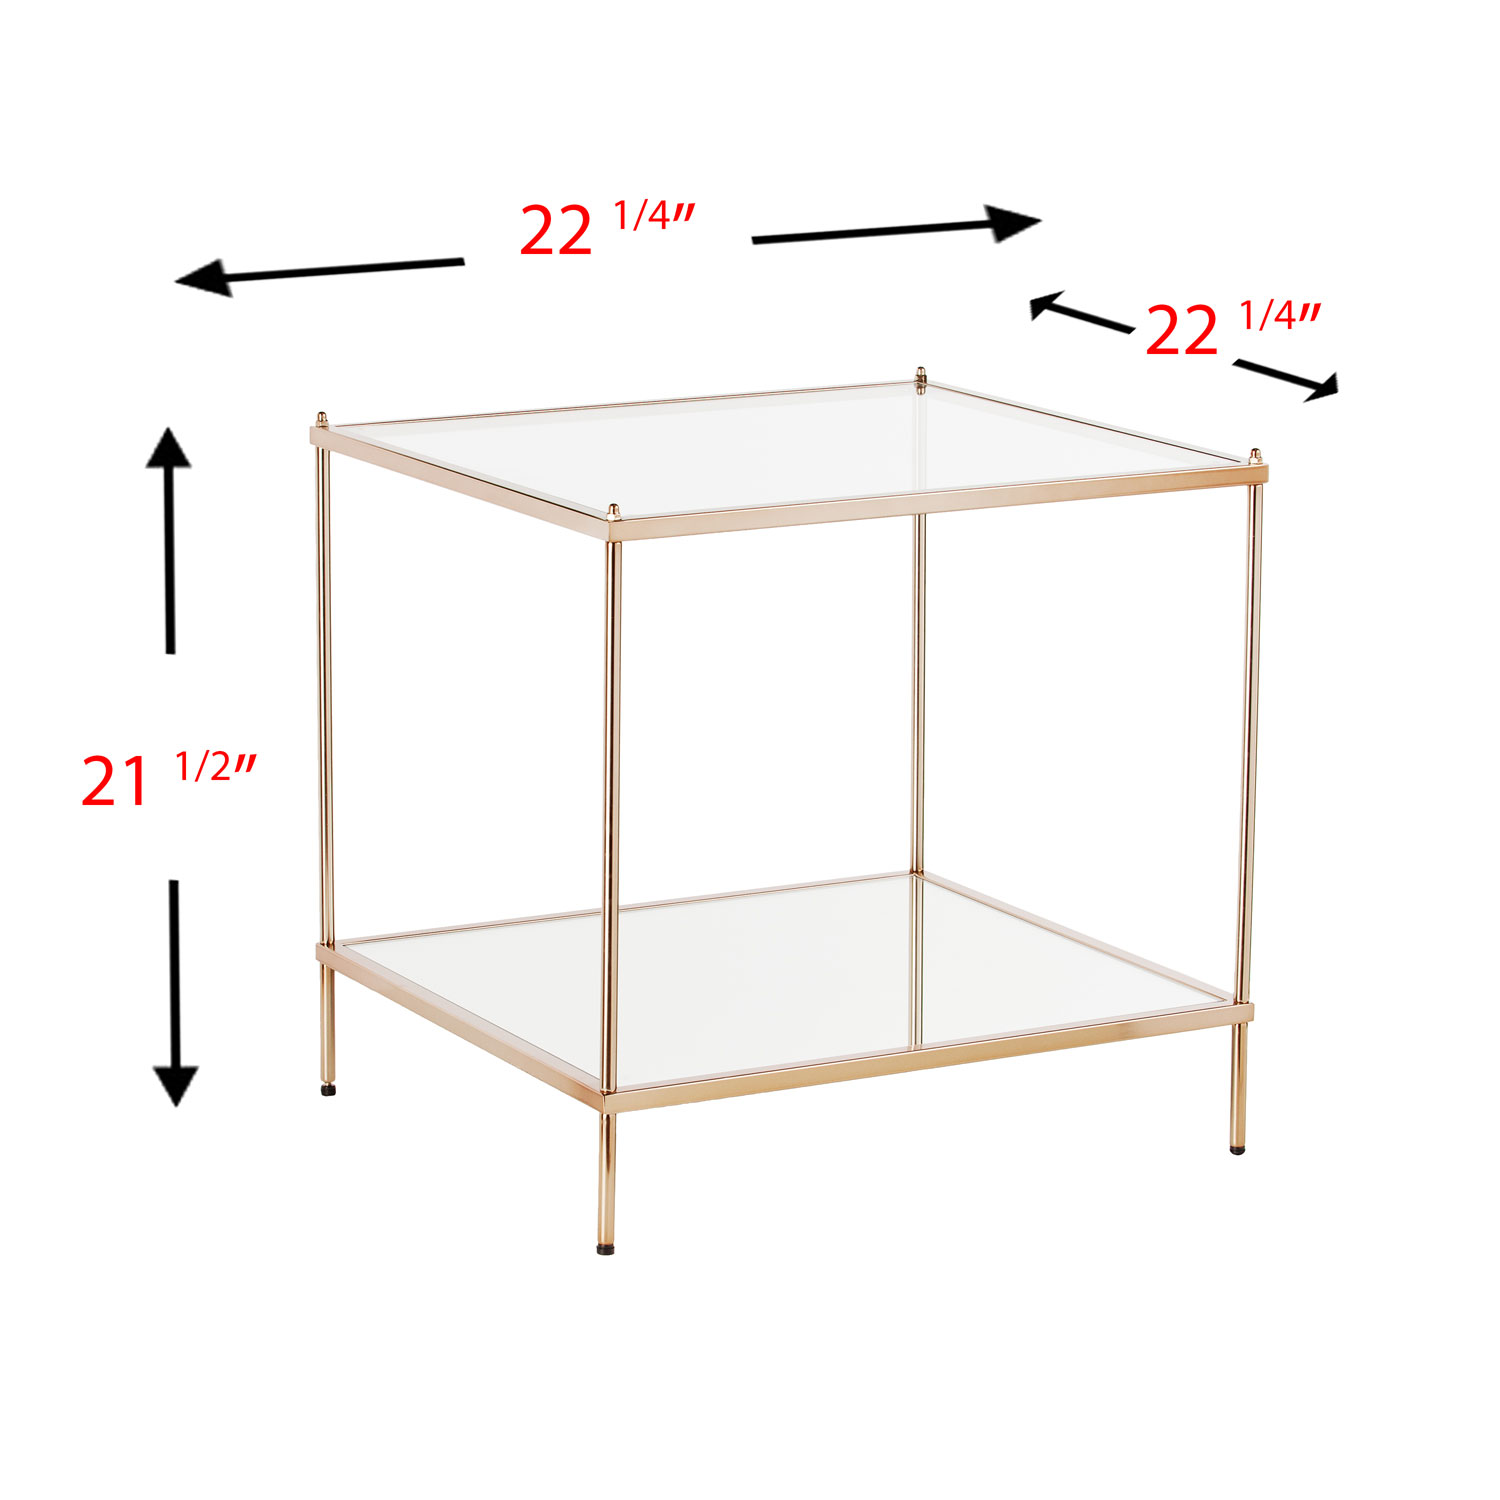 southern enterprises knox end table bellacor accent hover zoom chinese style lamp shades contemporary cocktail ethan allen coffee dining room plans three drawer side black